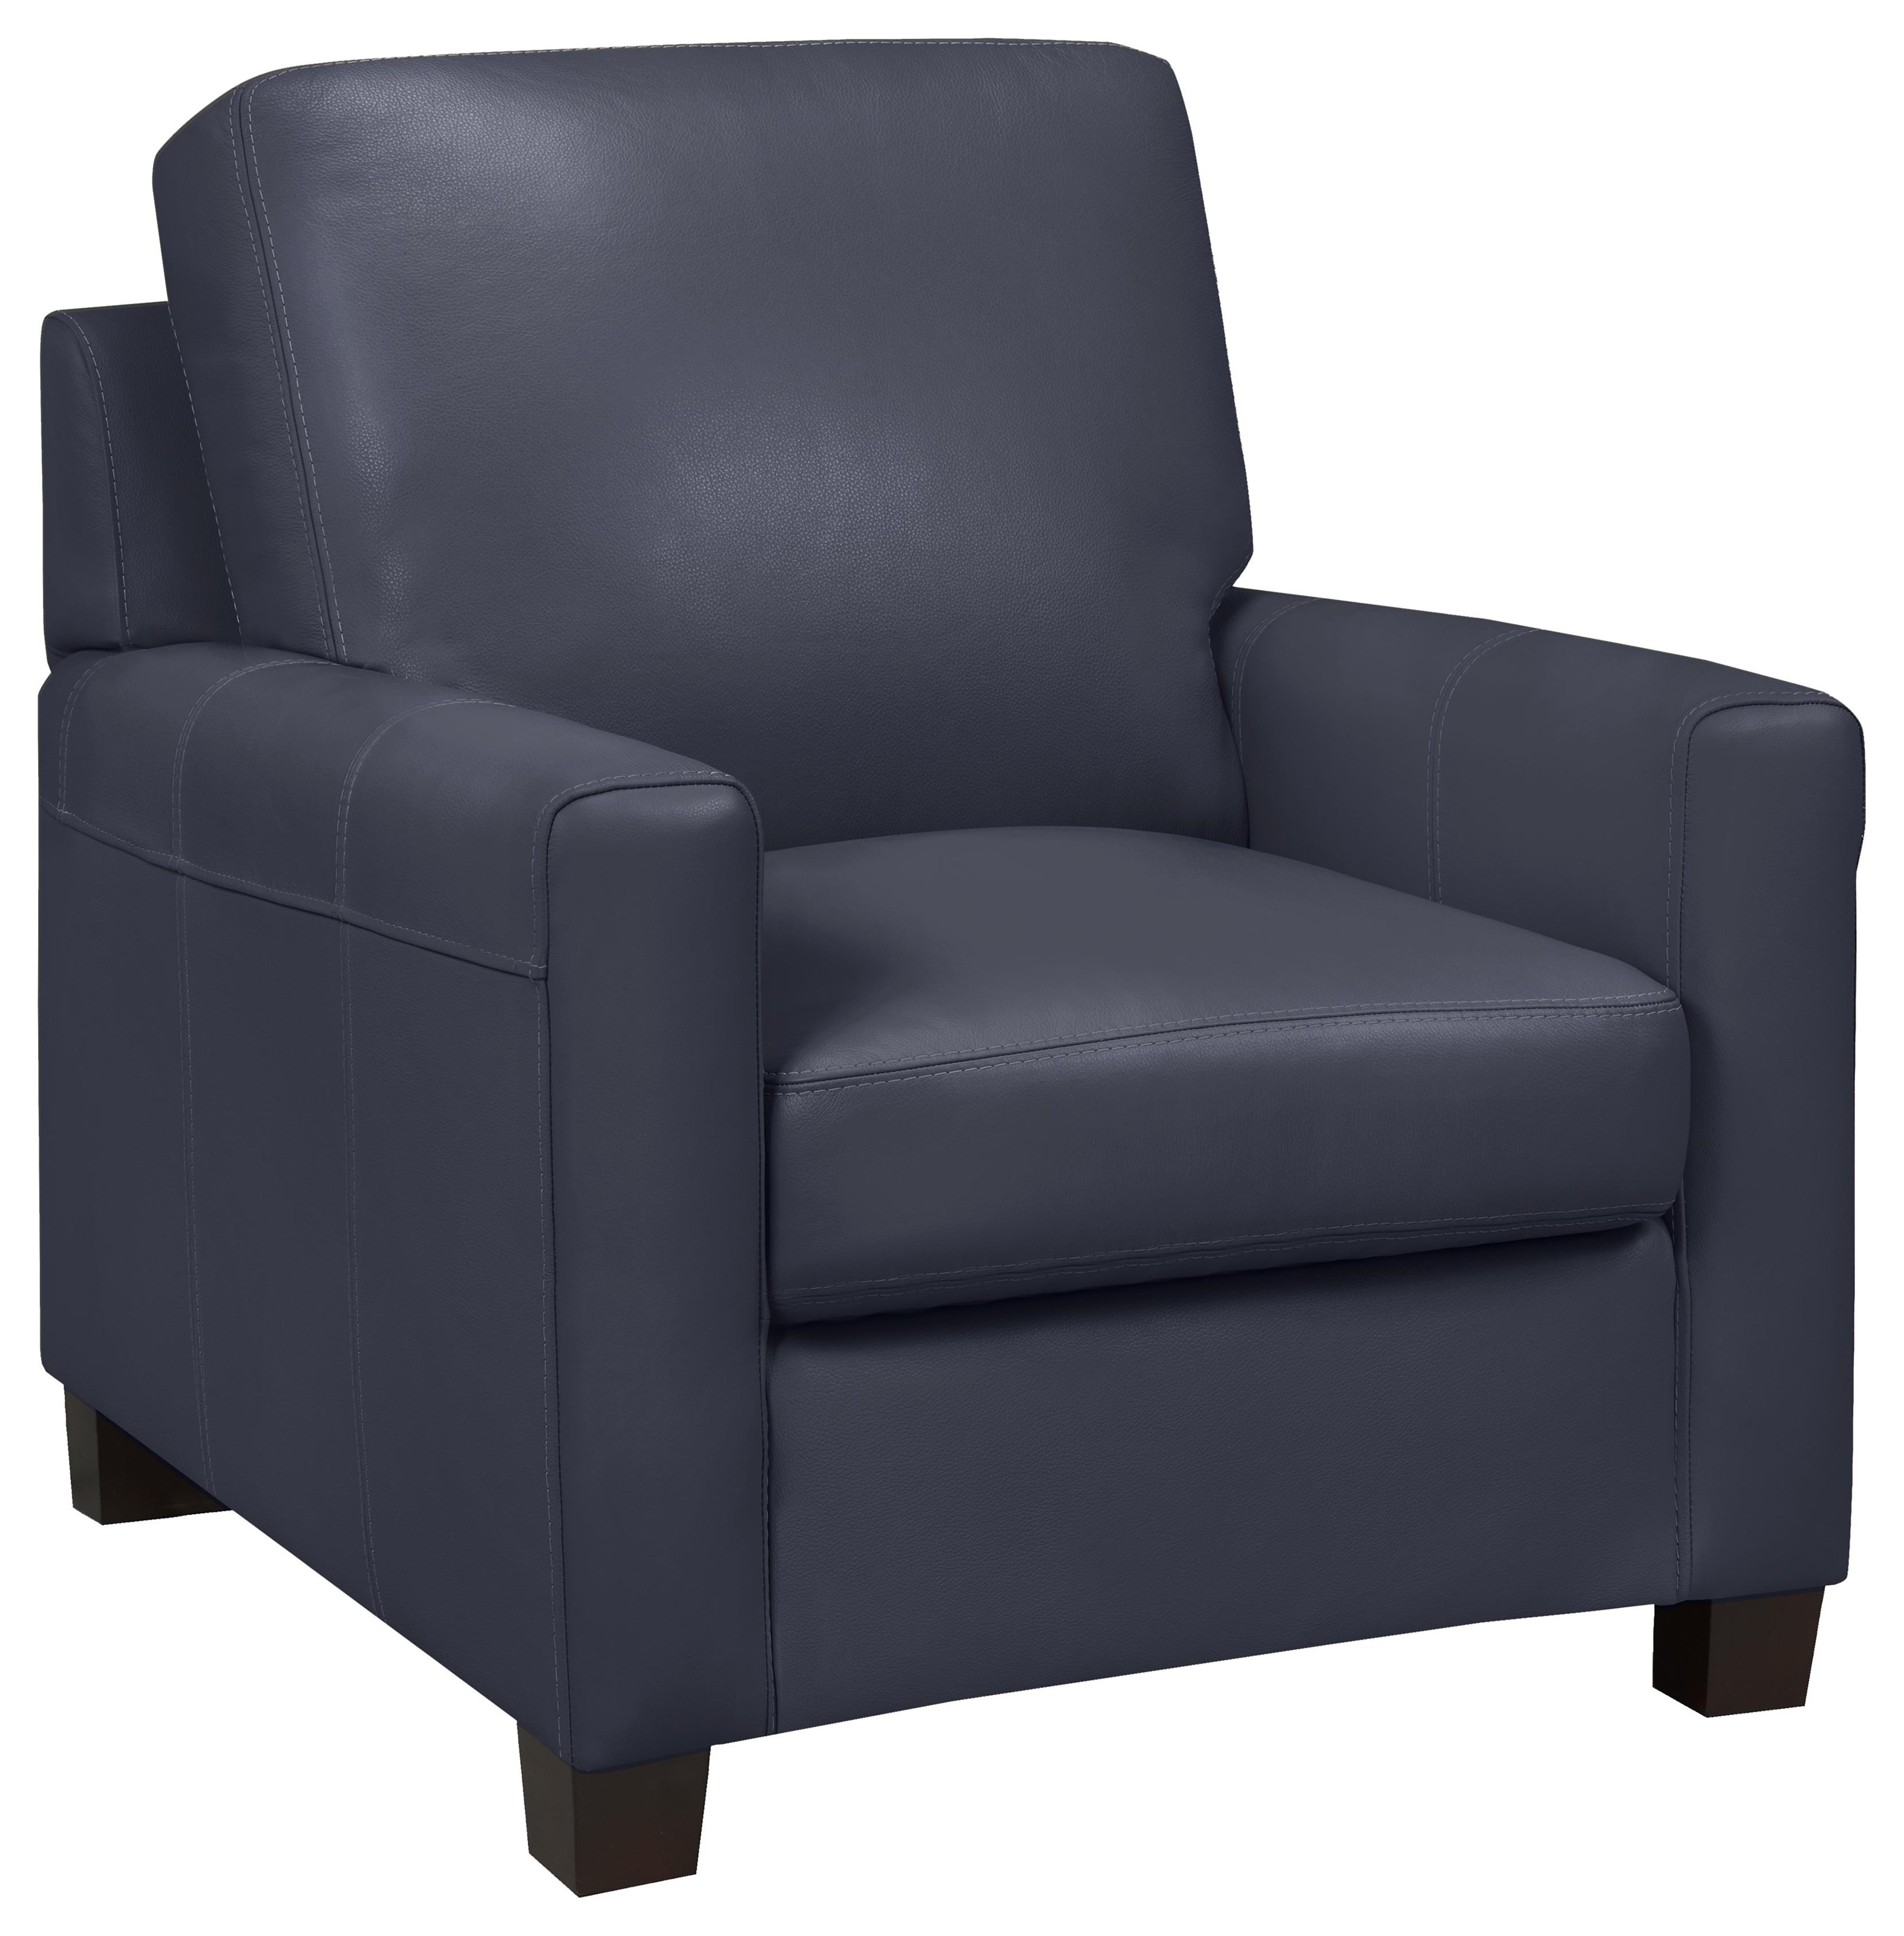 Milan Chair - Lthr  / Al Navy by Leather Living at Stoney Creek Furniture